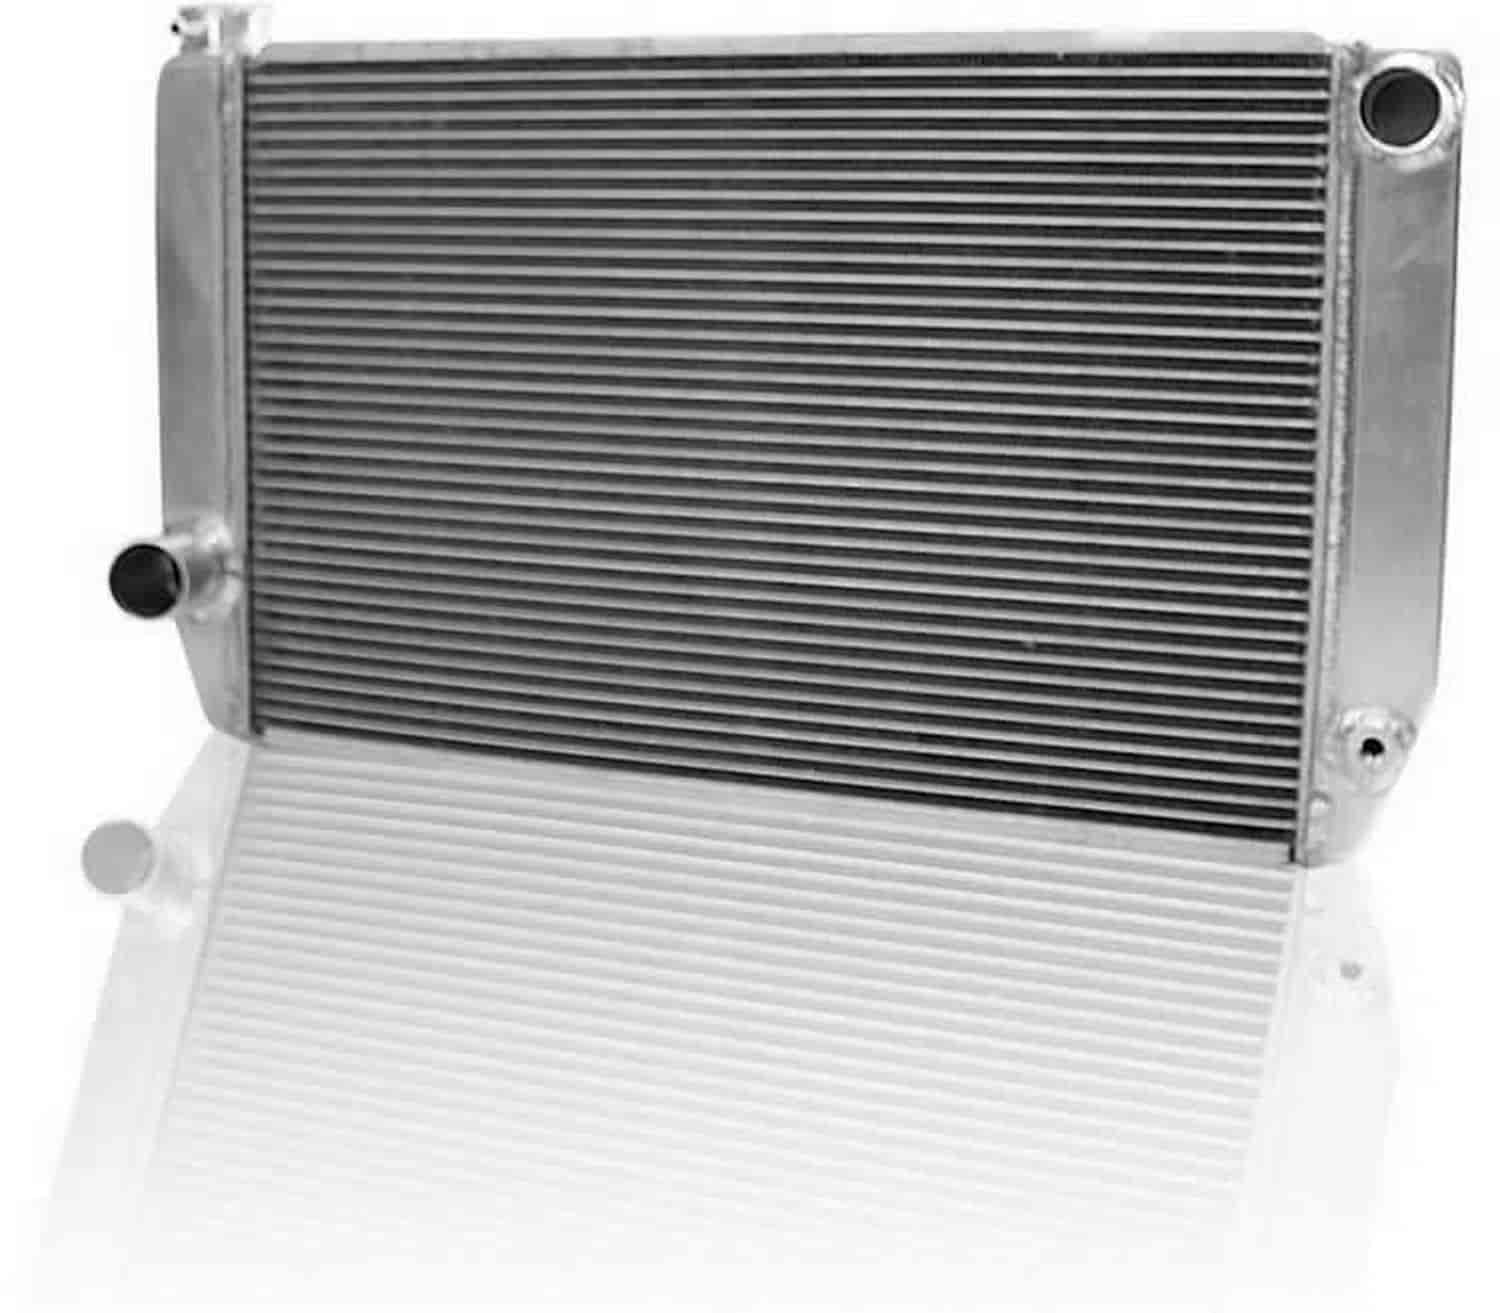 Griffin Radiators 1-26241-X